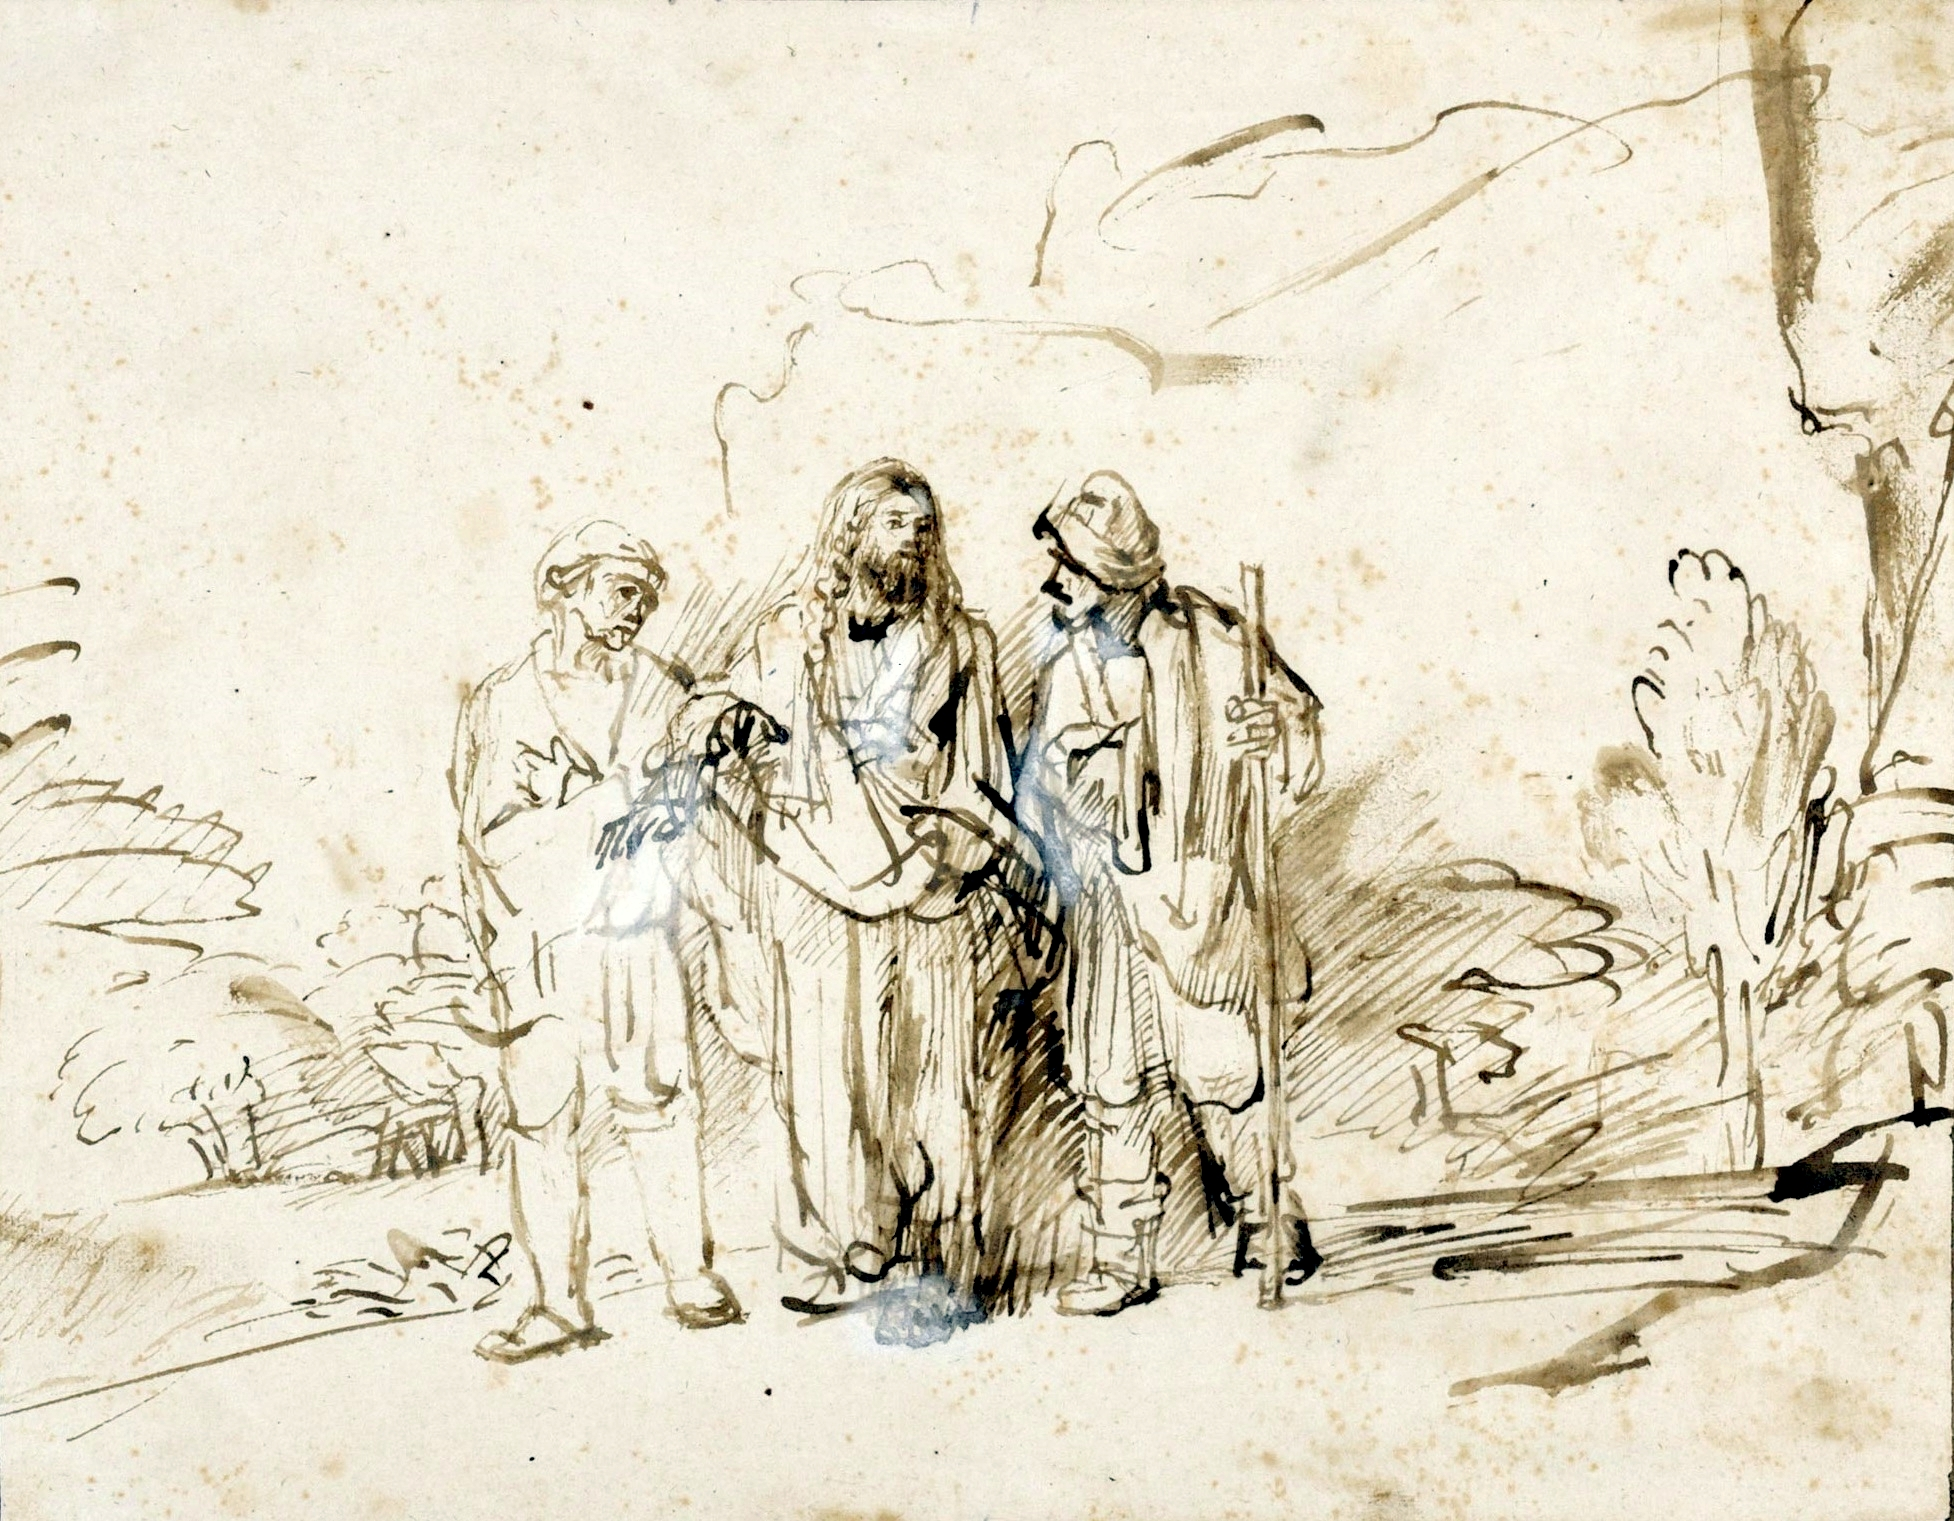 Rembrandt's sketch of Jesus and the disciples.  A point of ponder:   It was most difficult to find a painting or sketch of Jesus sending his disciples out without having Jesus in the picture with them.  I found that in itself worth contemplating-